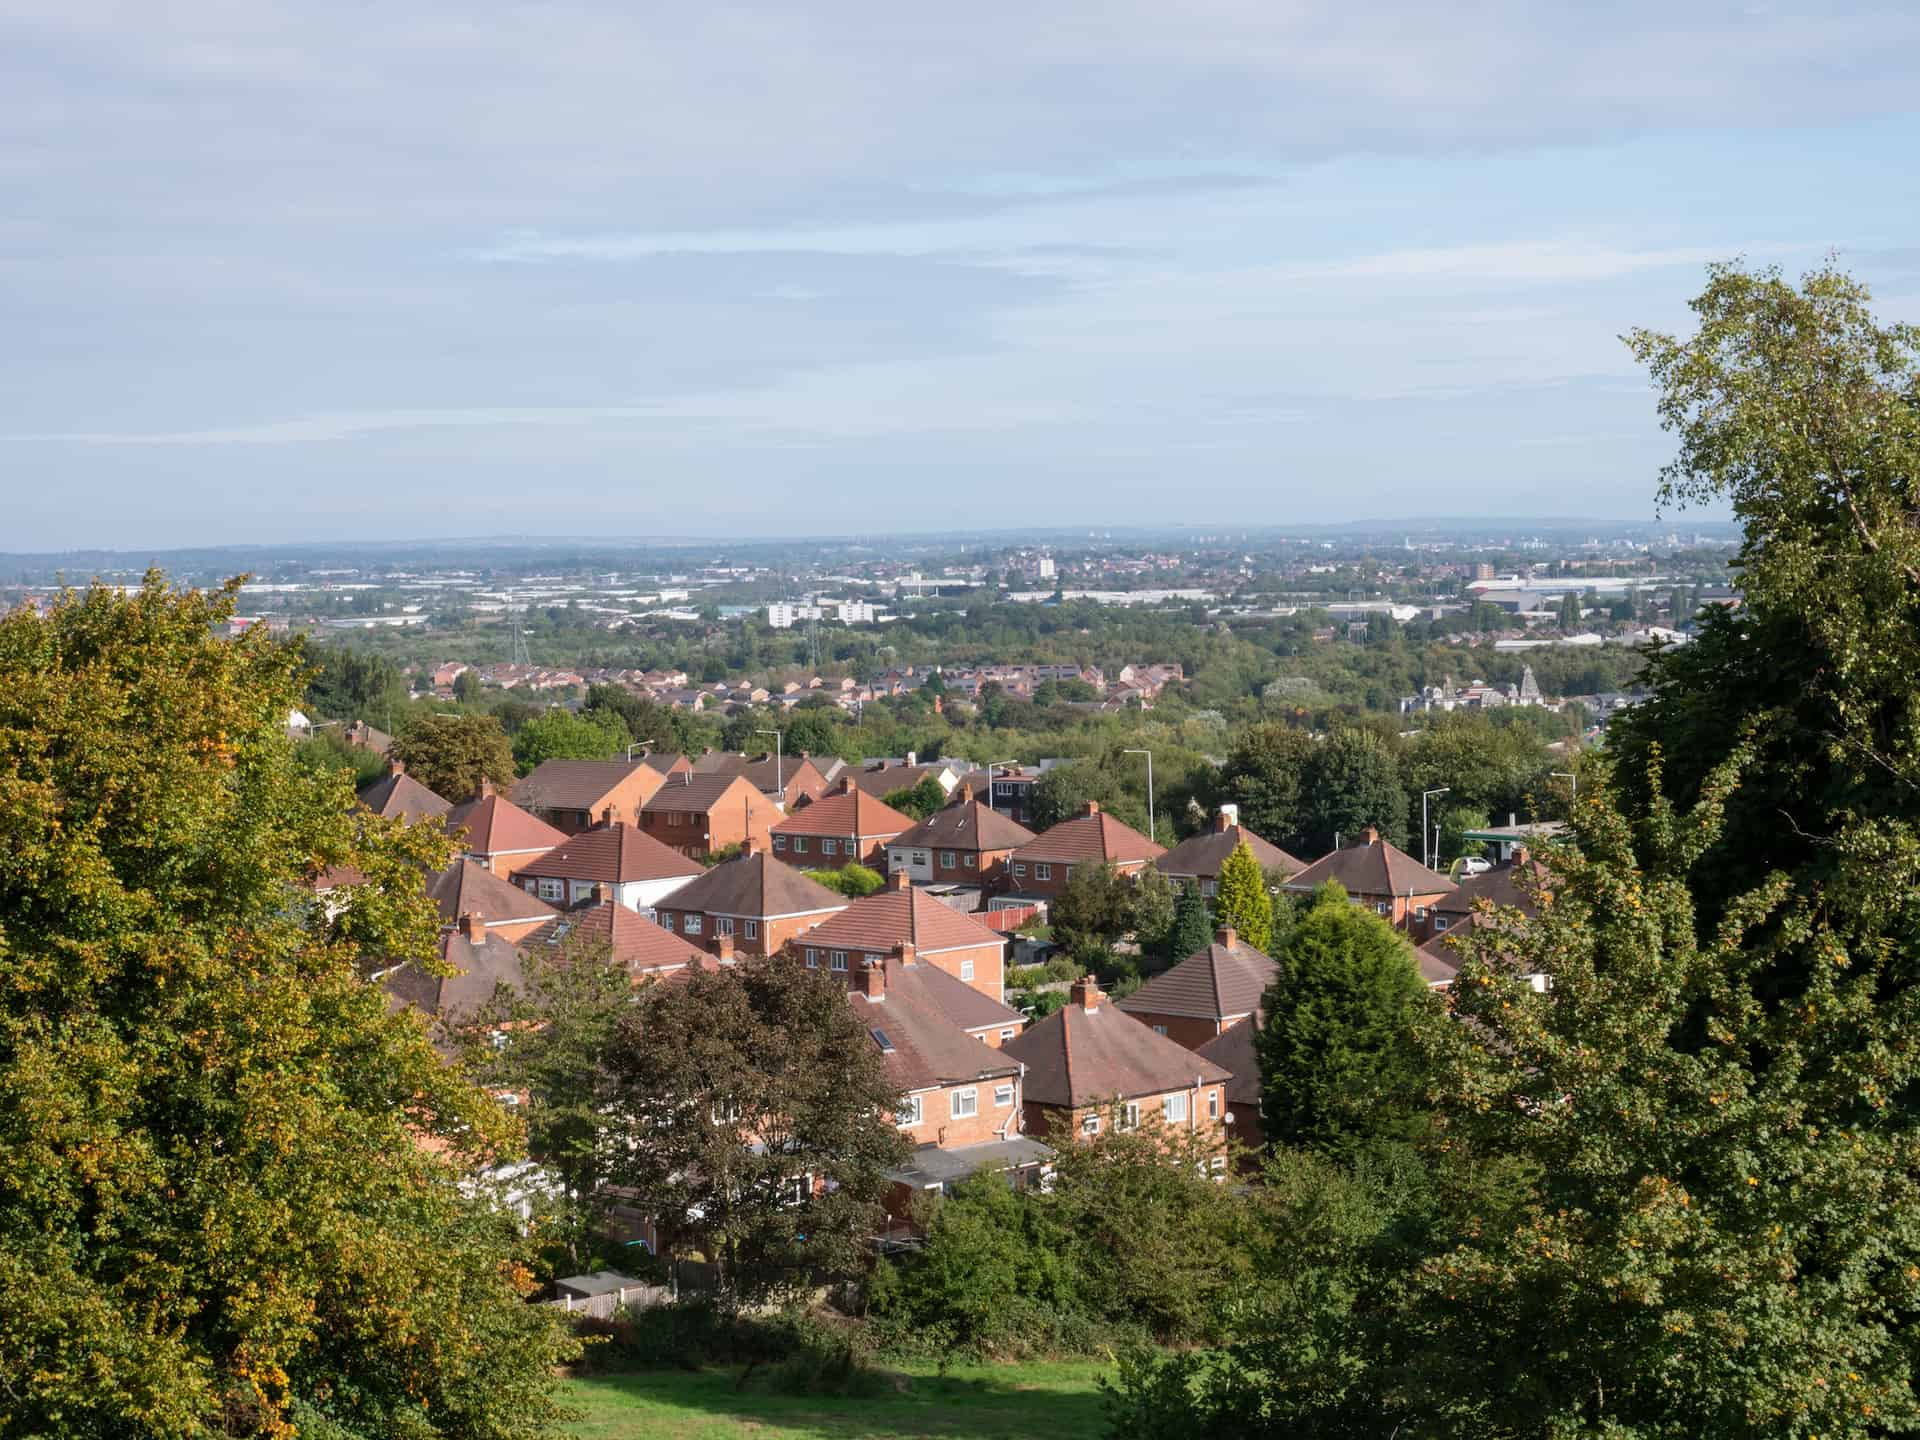 view from Bury Park looking north.